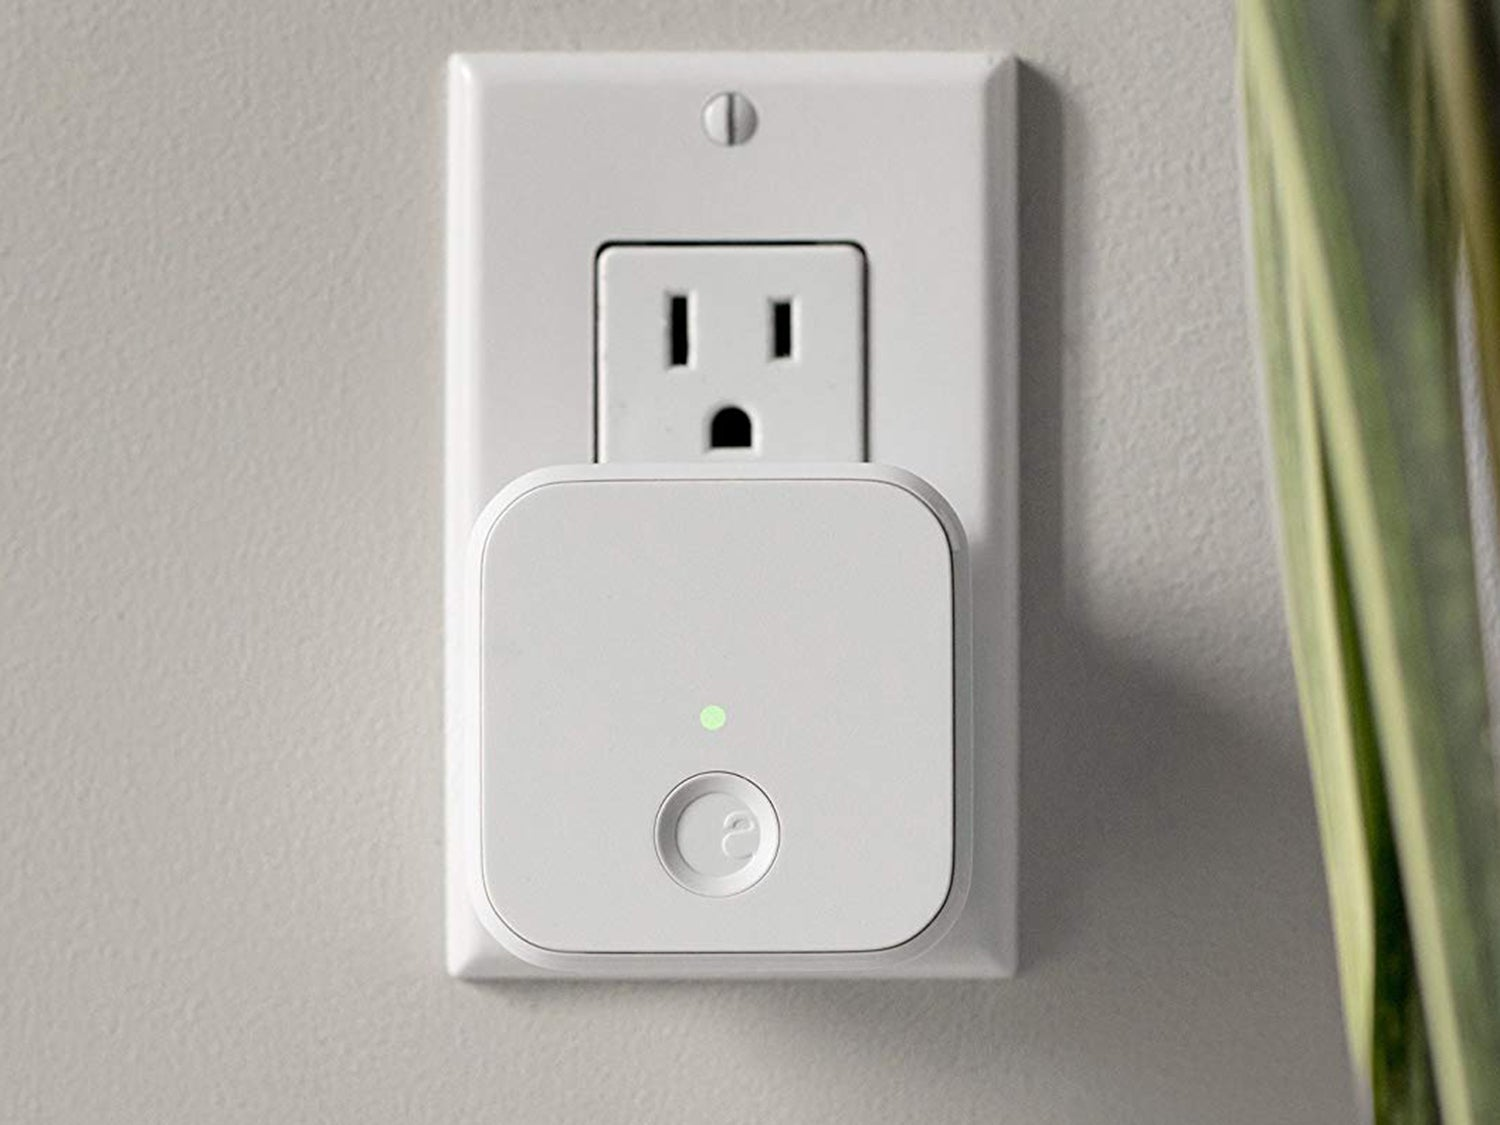 A smart plug in the outlet